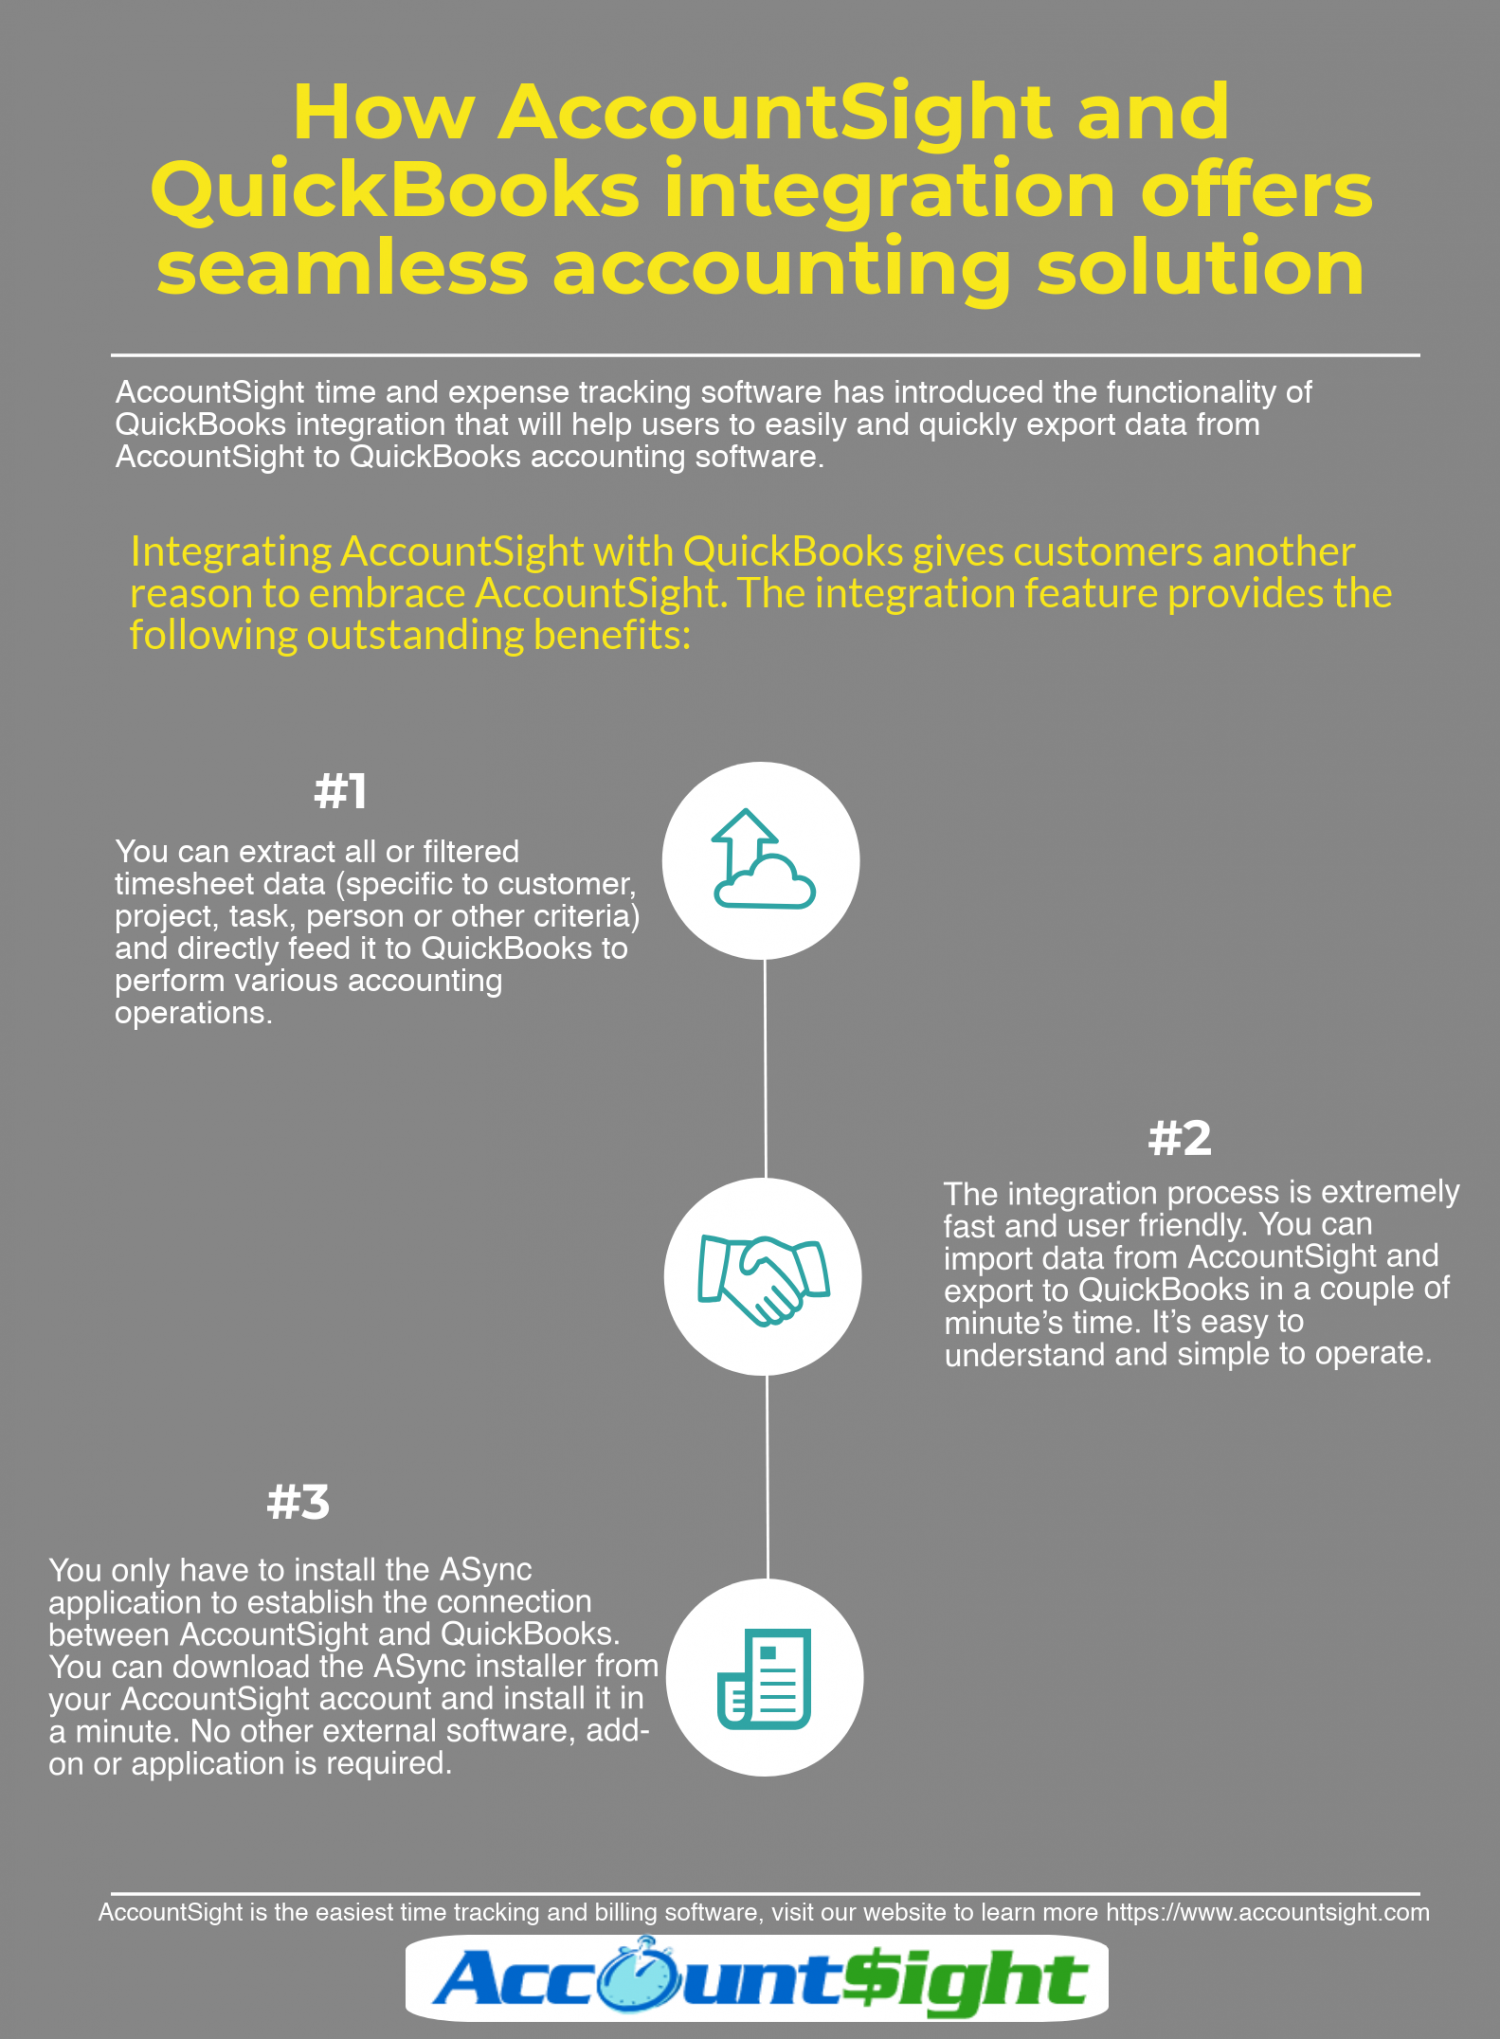 How AccountSight and Quickbooks integration works Infographic